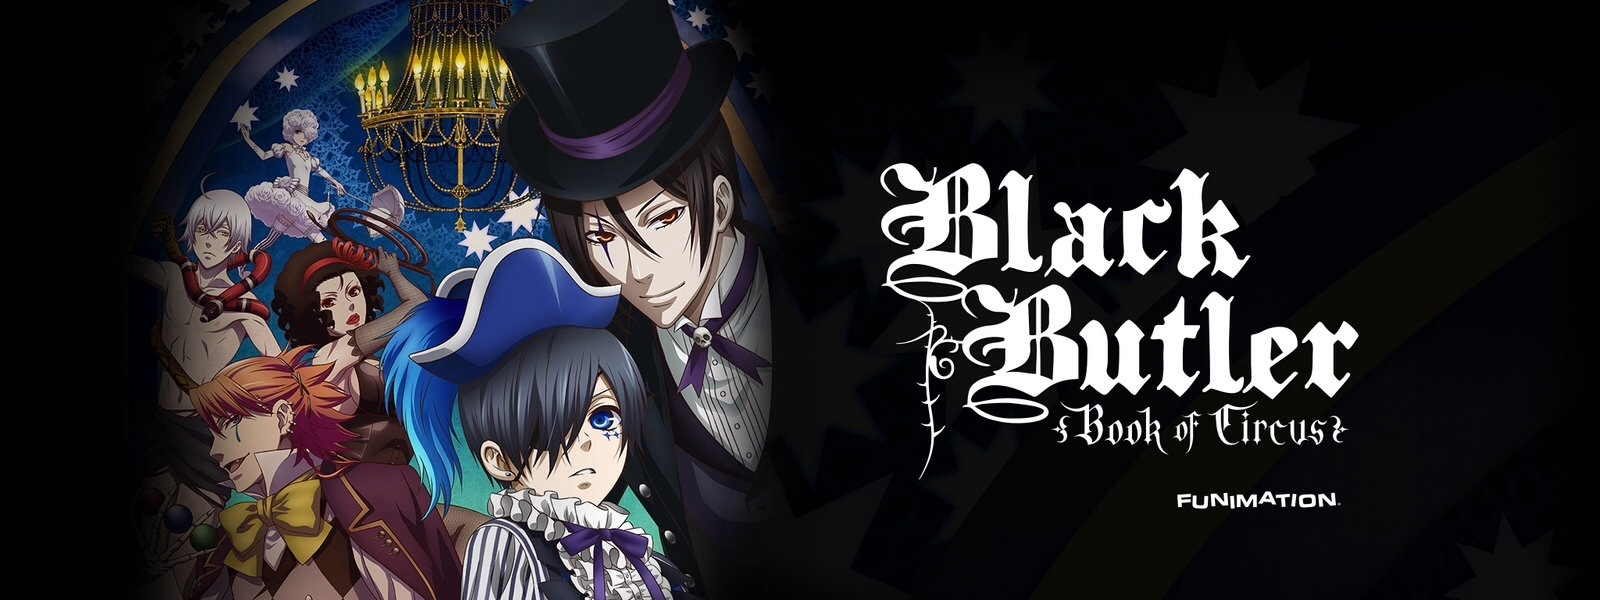 kuroshitsuji book of circus images black butler book of circus hd